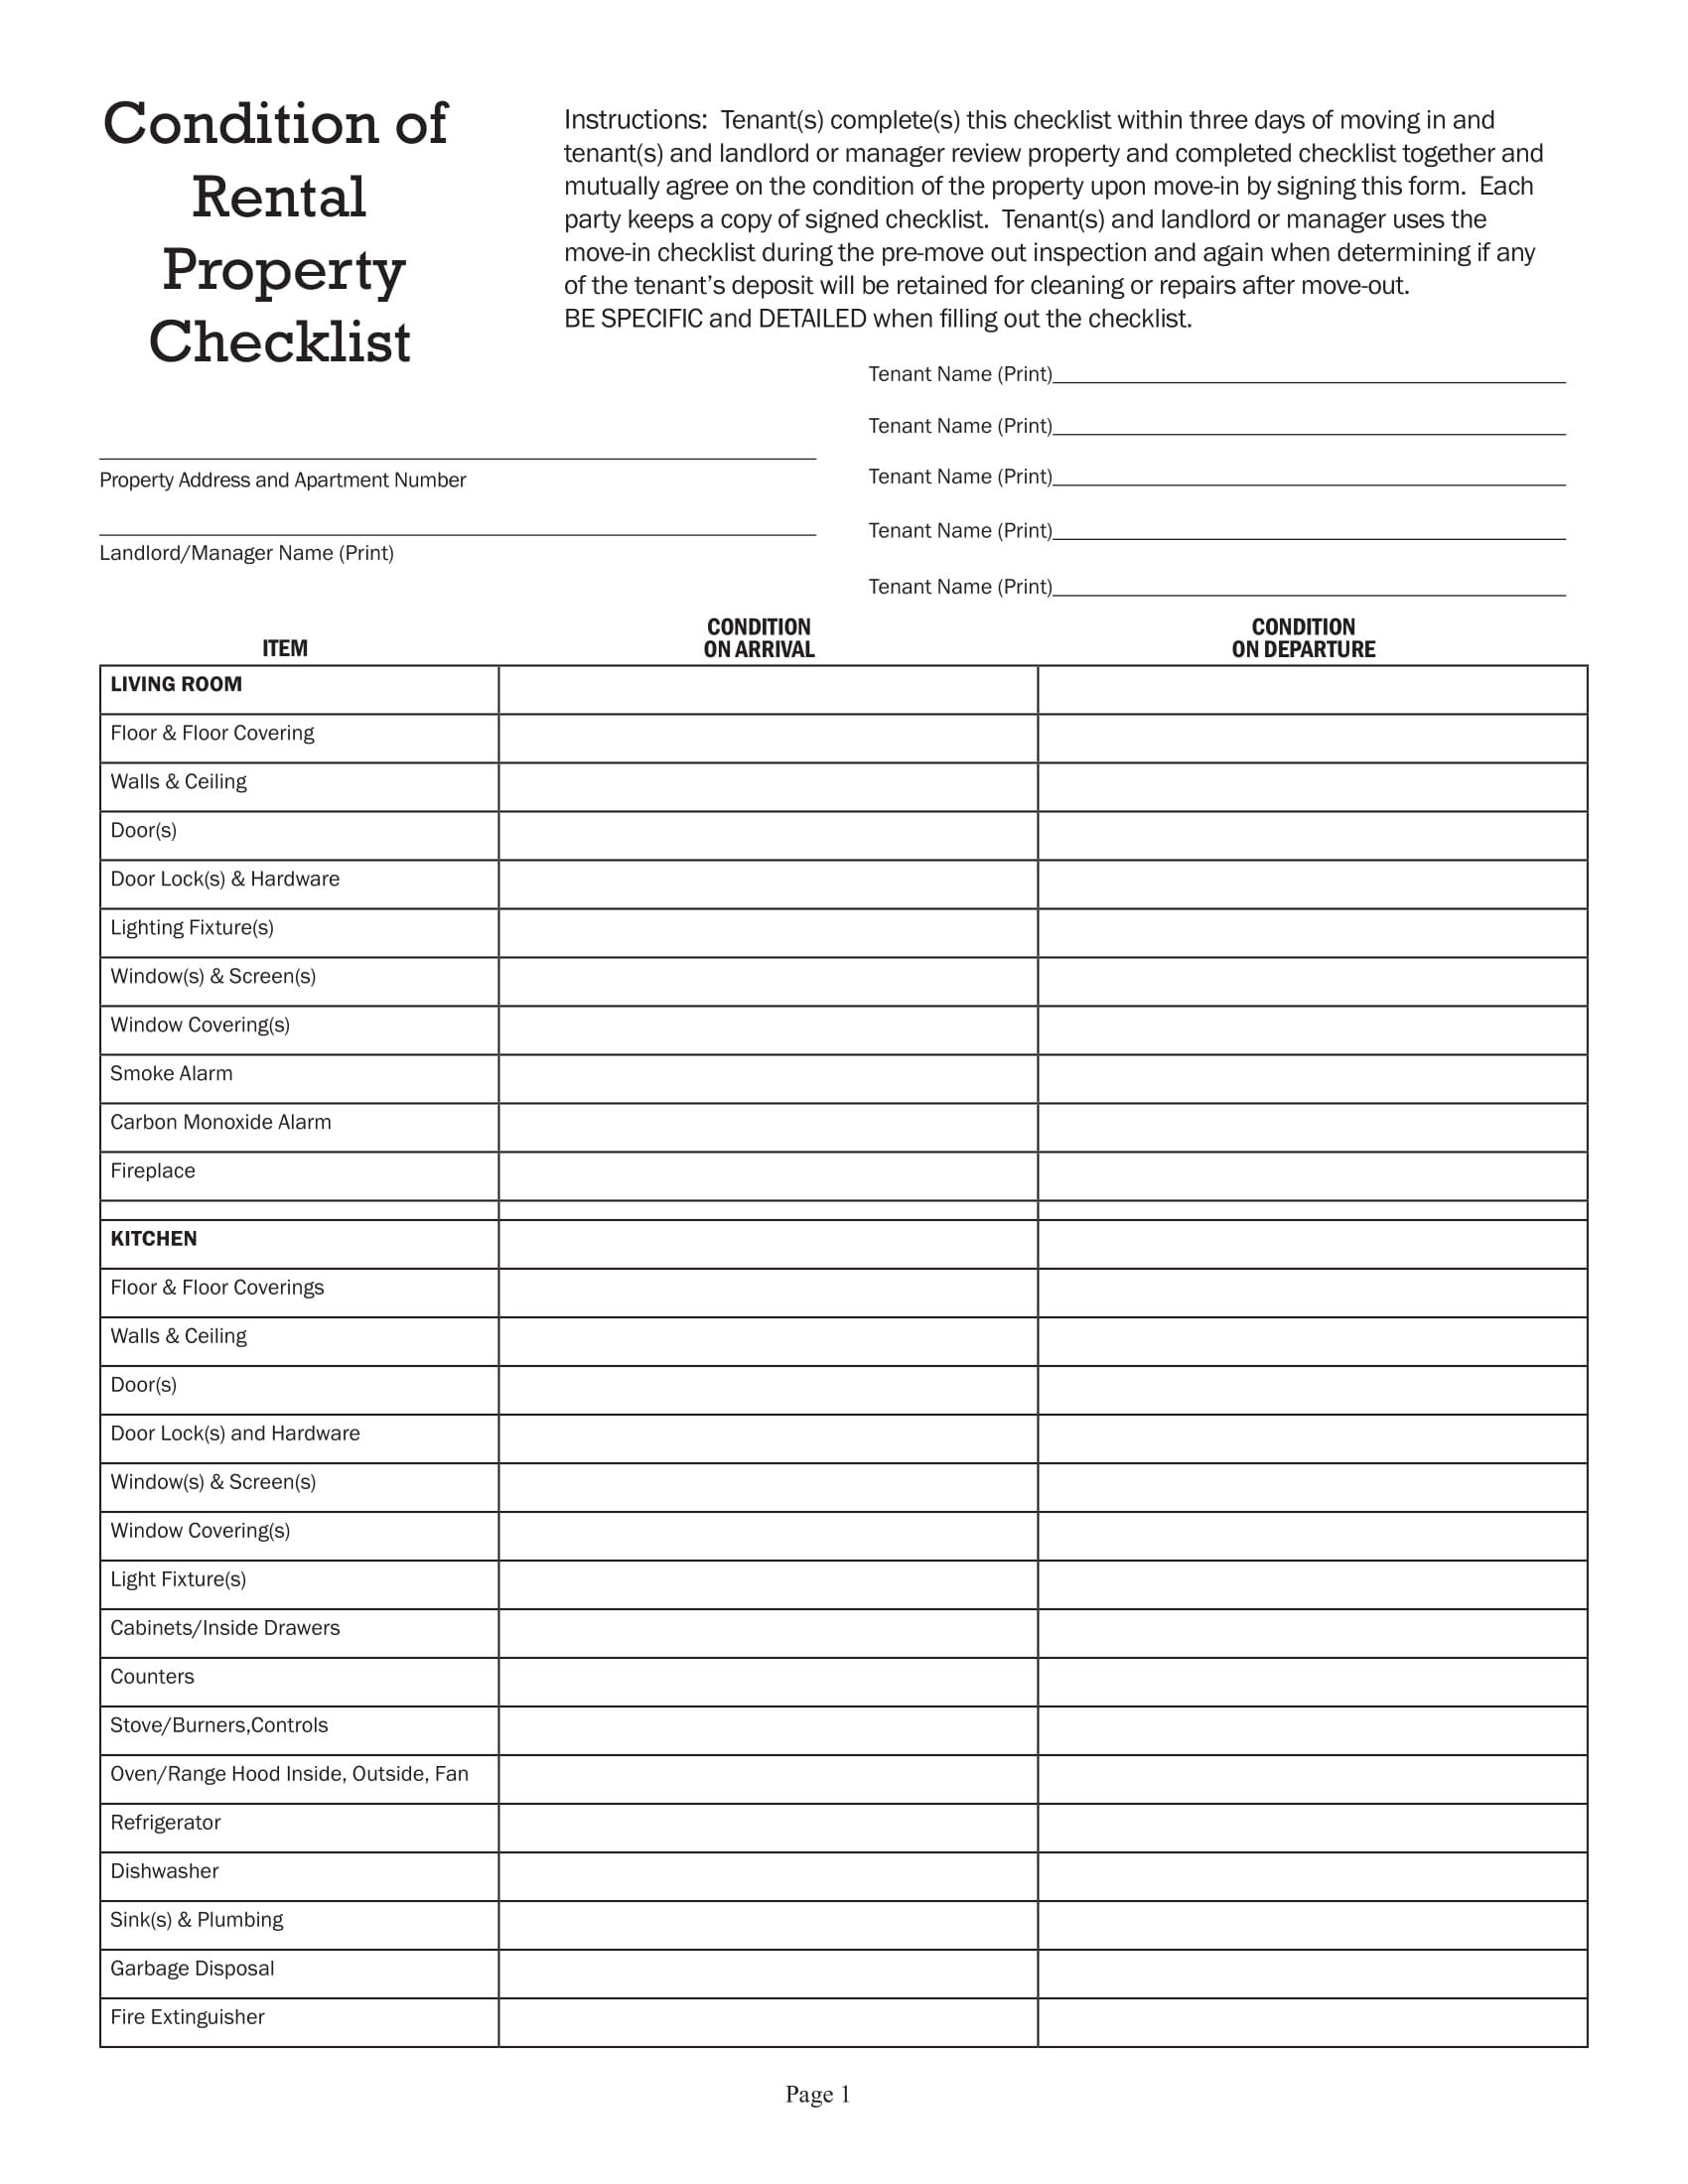 rental condition checklist 1